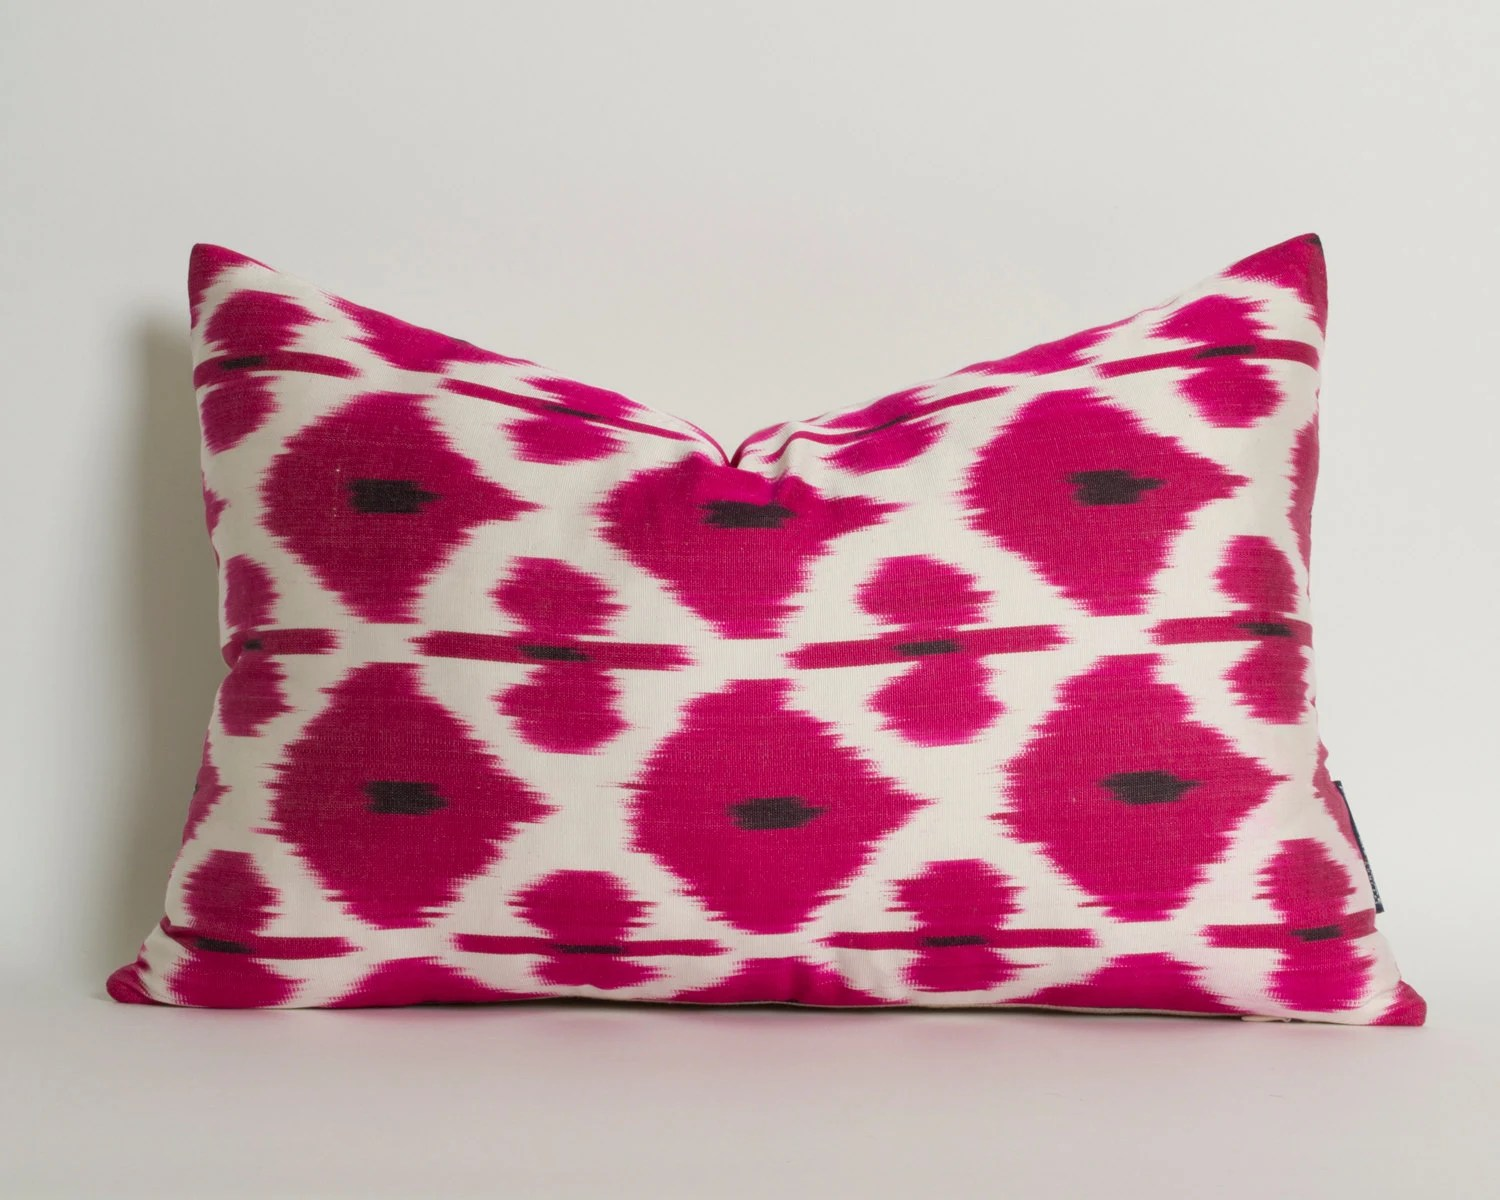 pink throw pillows for sofa spiderman sleeper ikat pillow cover decorative couch by